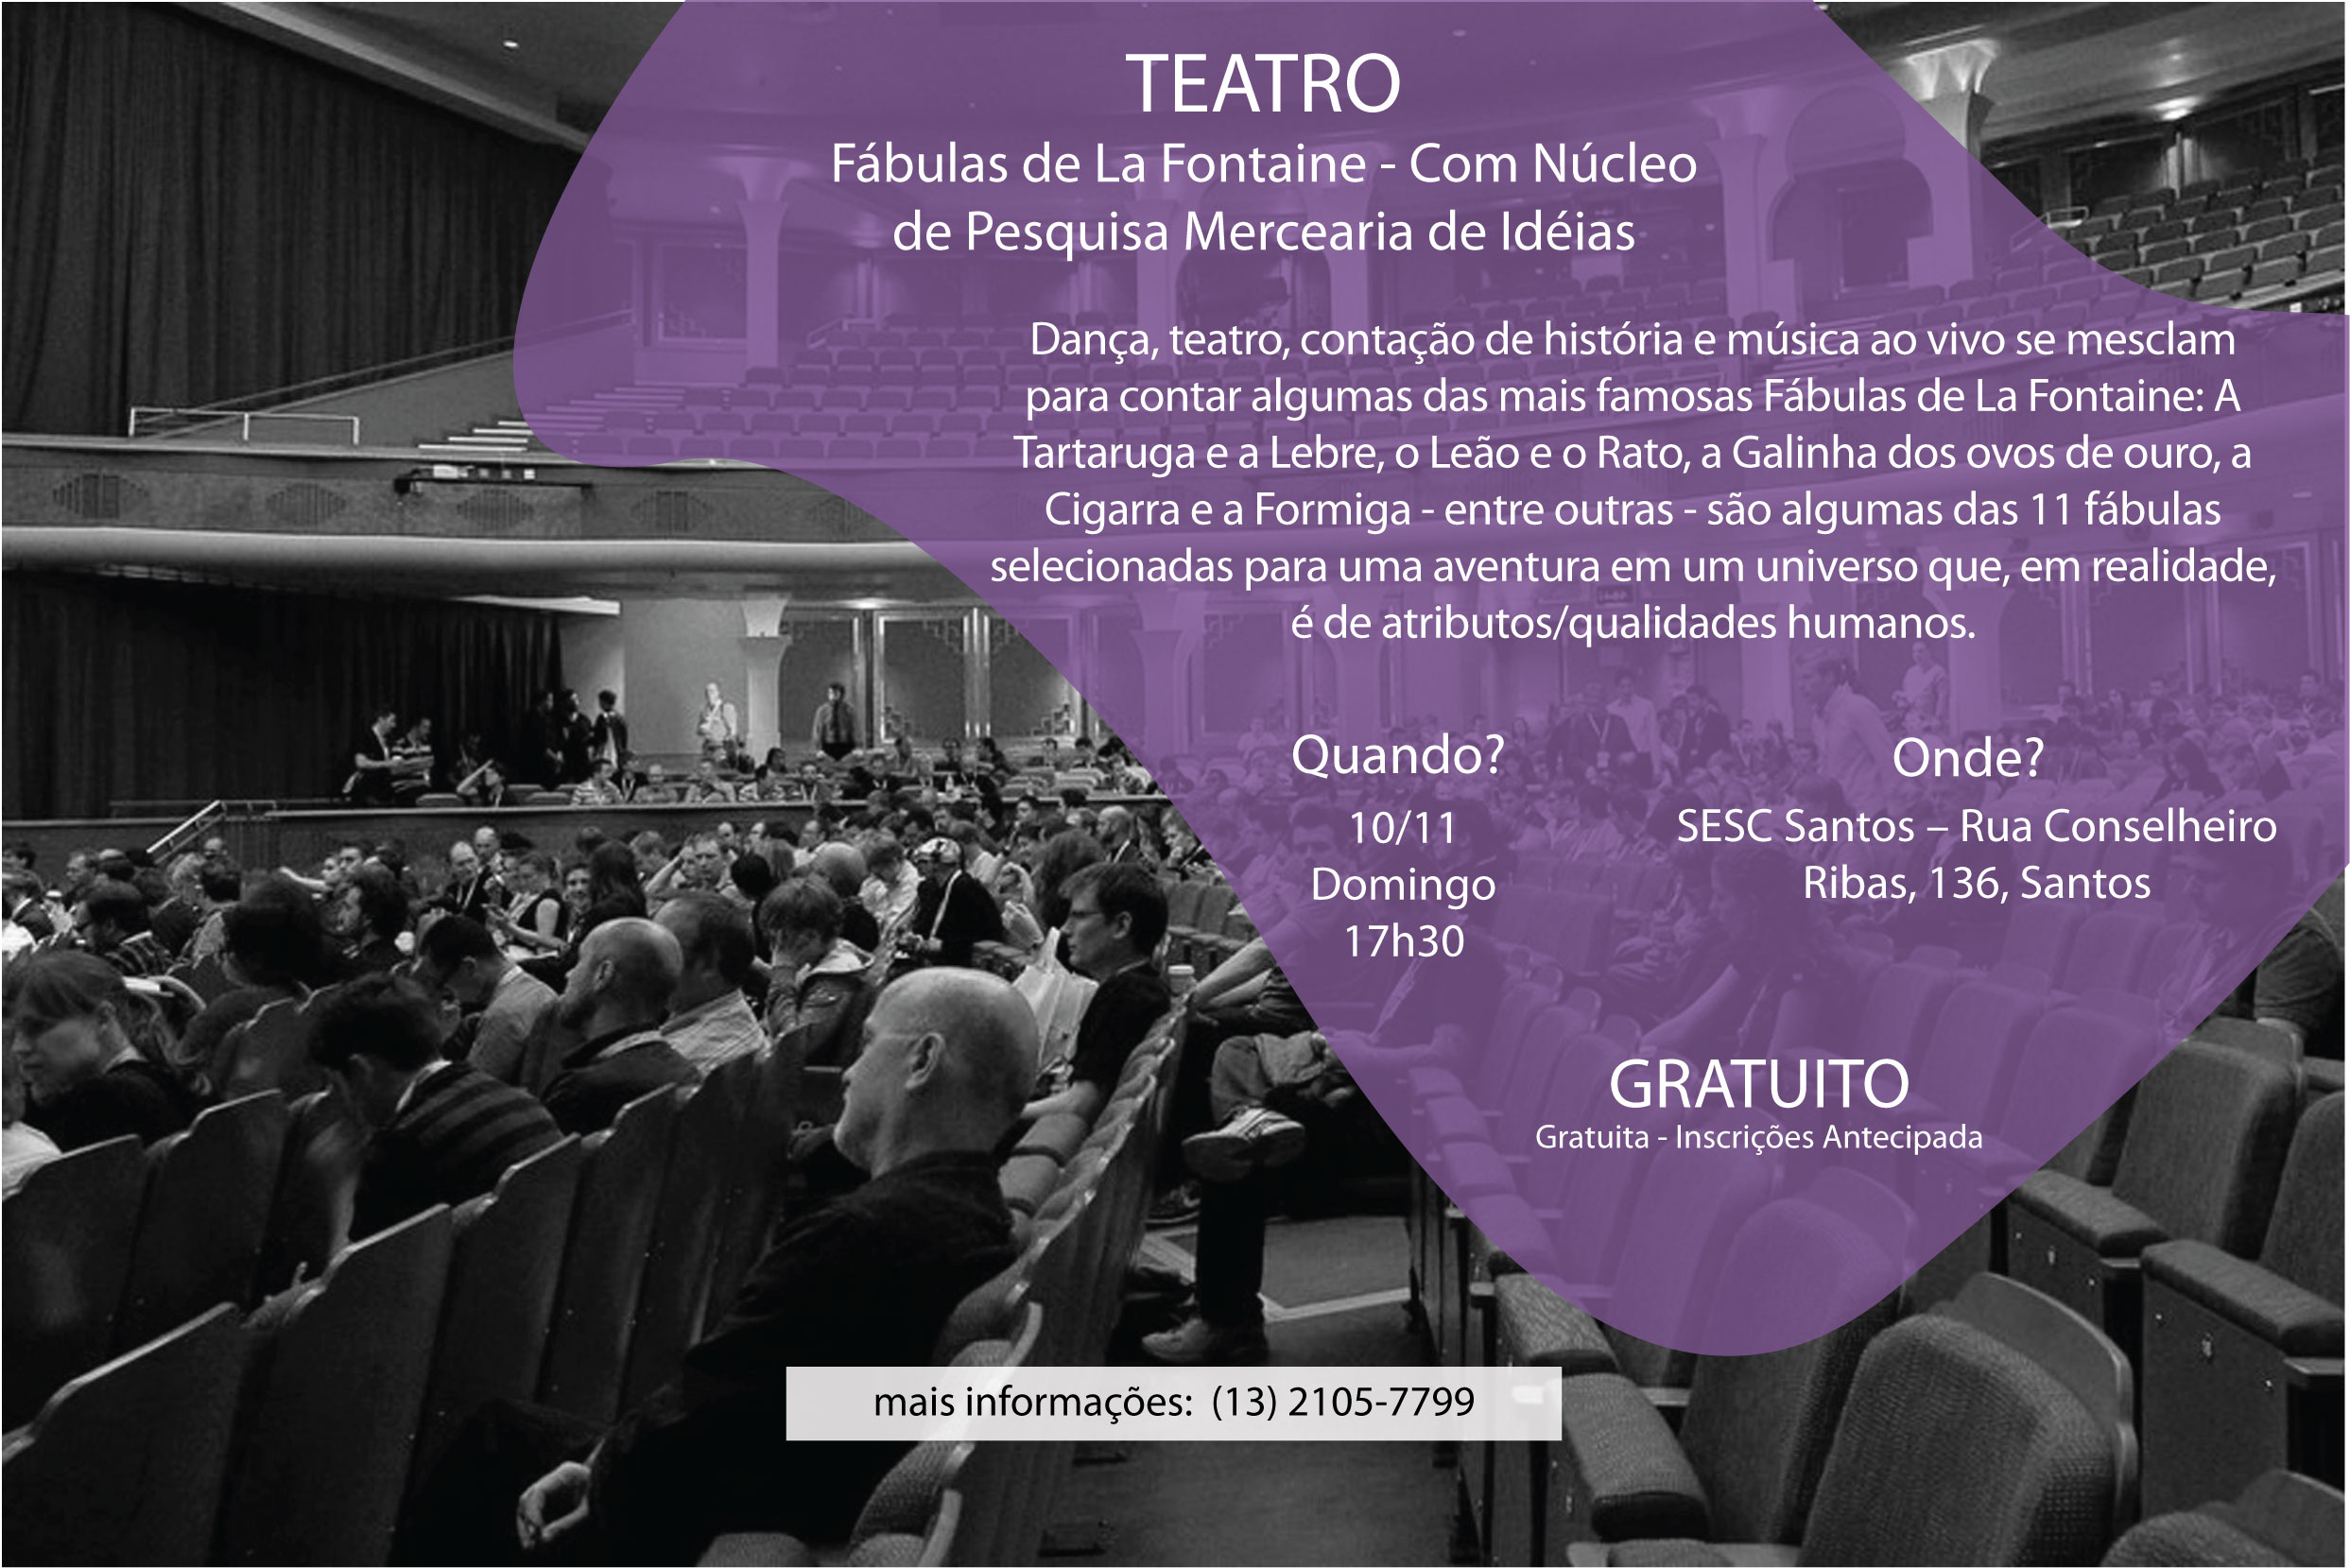 Agência Alesp<a style='float:right' href='https://www3.al.sp.gov.br/repositorio/noticia/N-11-2019/fg243578.jpg' target=_blank><img src='/_img/material-file-download-white.png' width='14px' alt='Clique para baixar a imagem'></a>